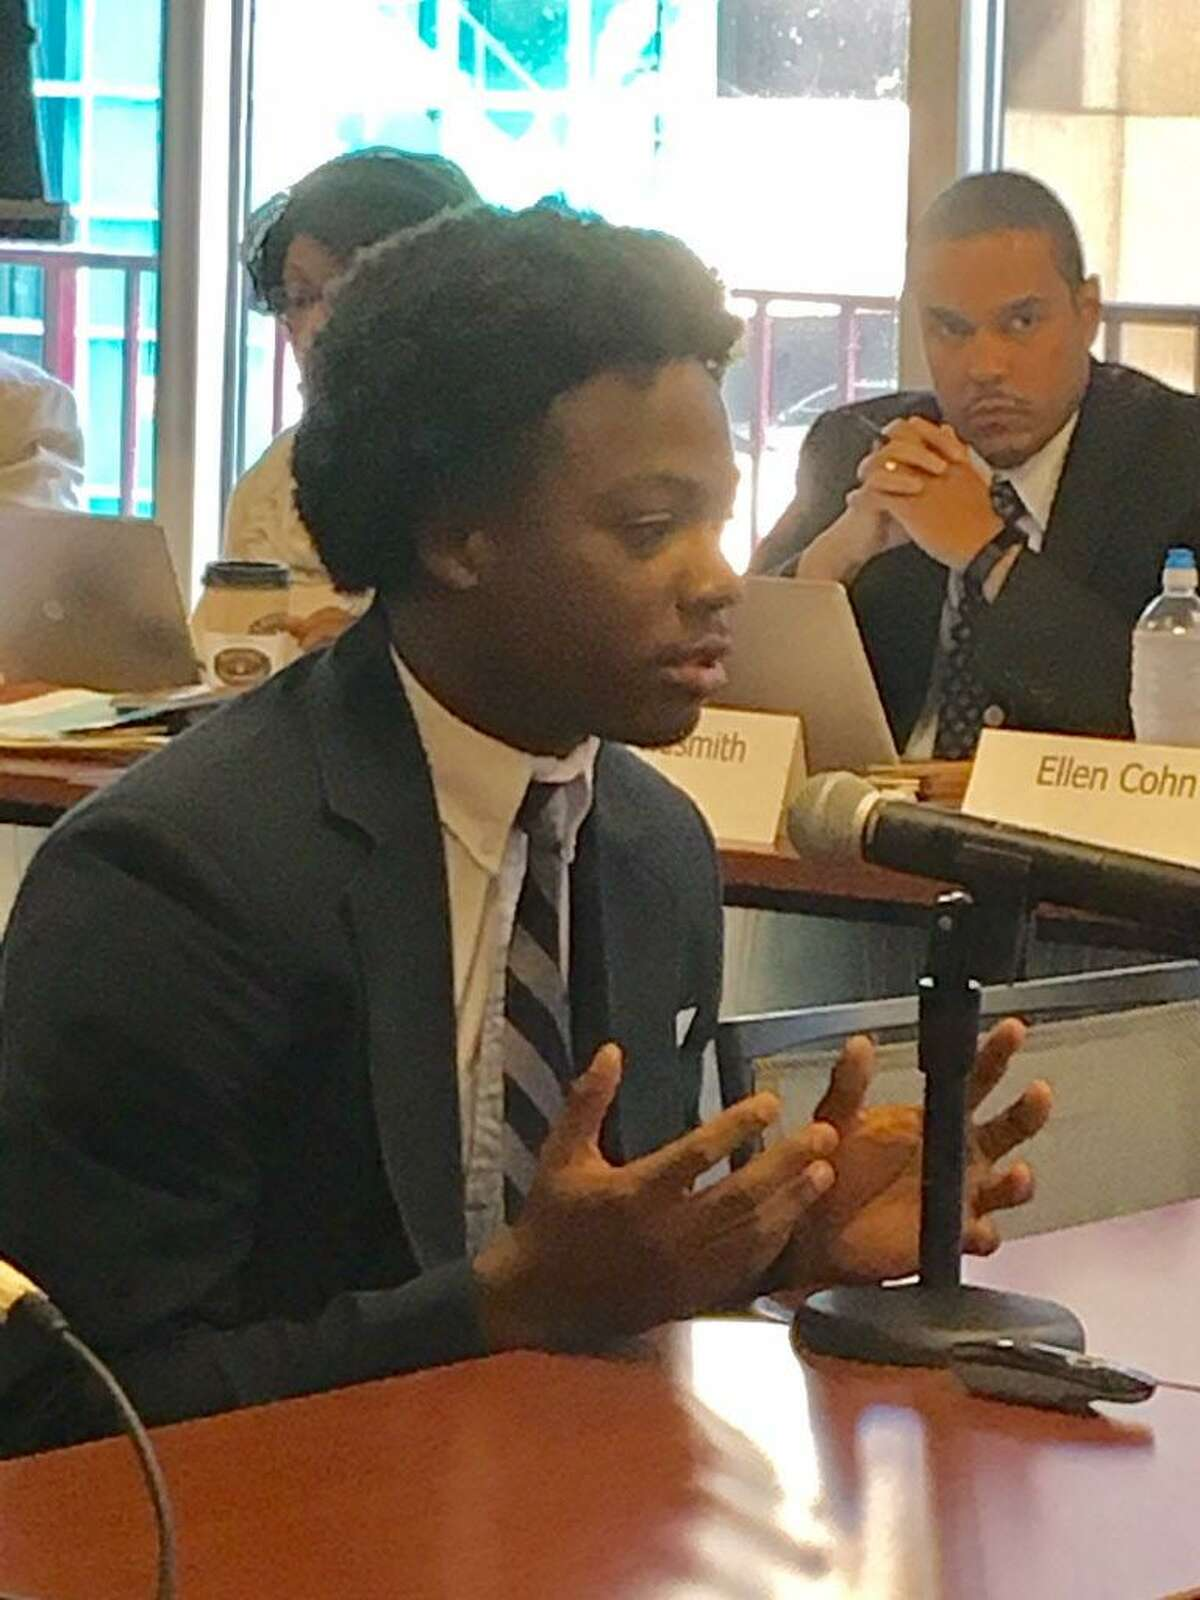 A Capital Prep Harbor student tells State Board of Education his school should expand